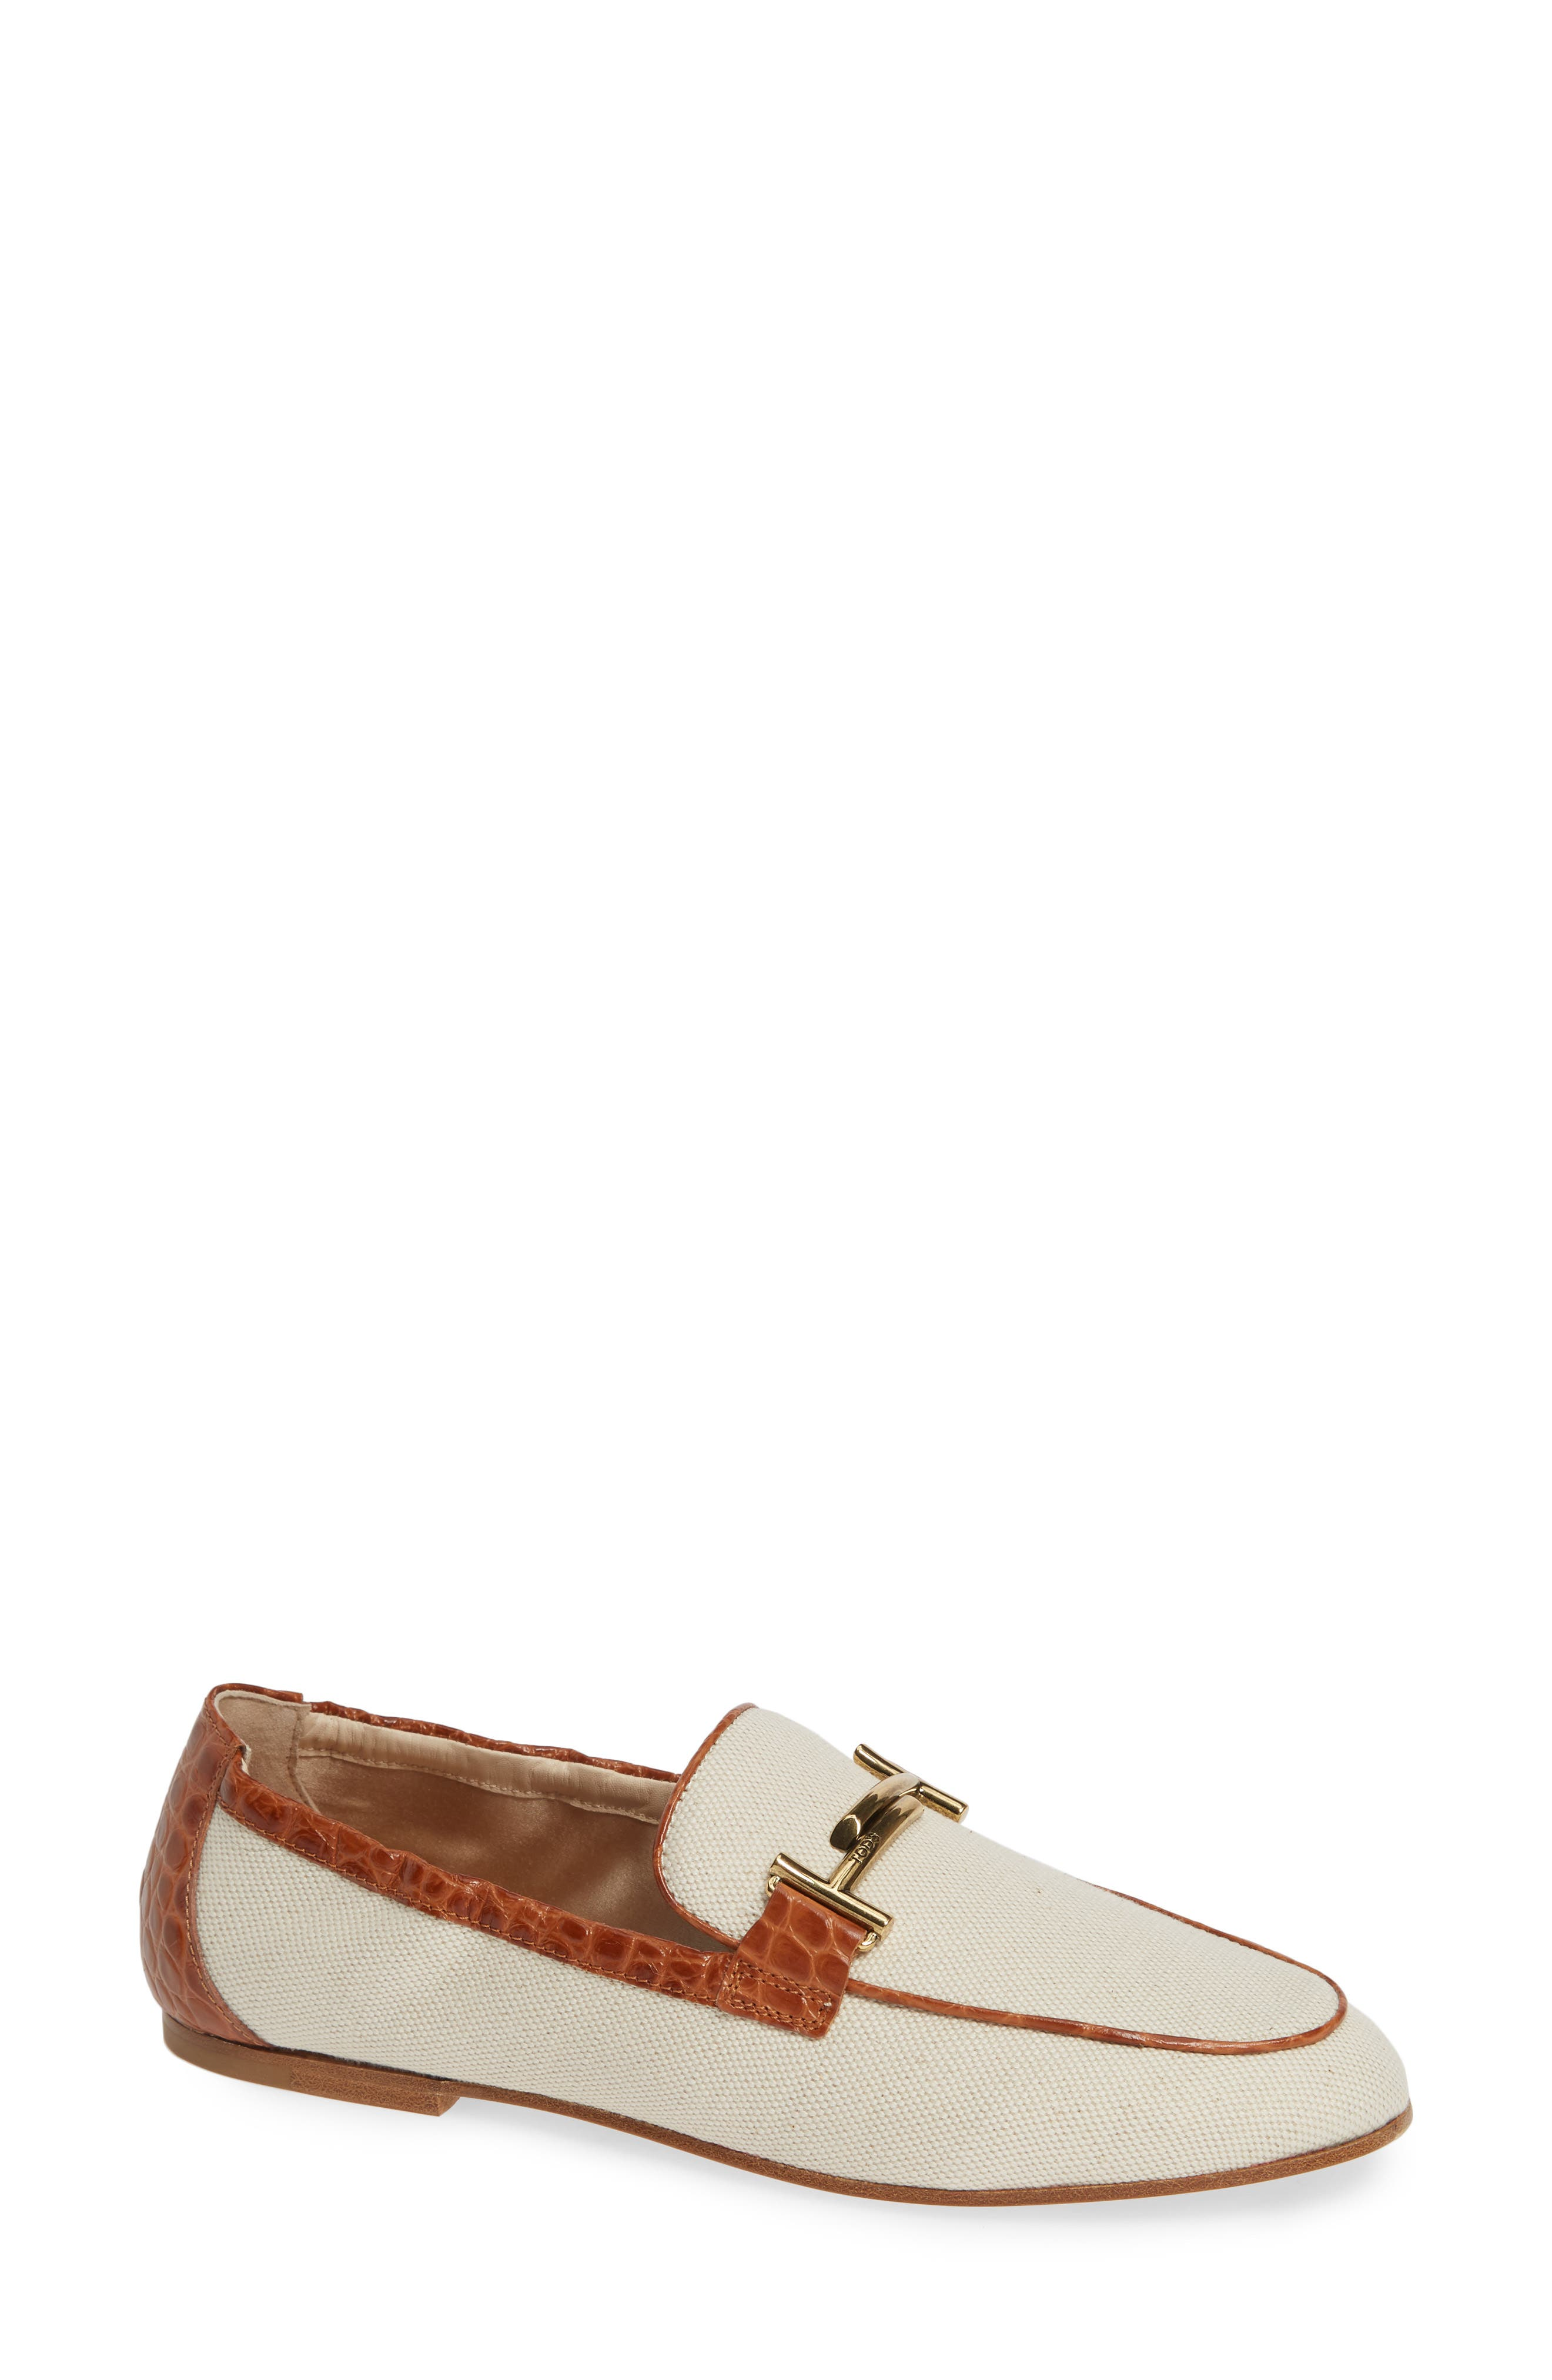 TOD'S Double-T Scrunch Loafer, Main, color, STRIPE/ CARAMEL